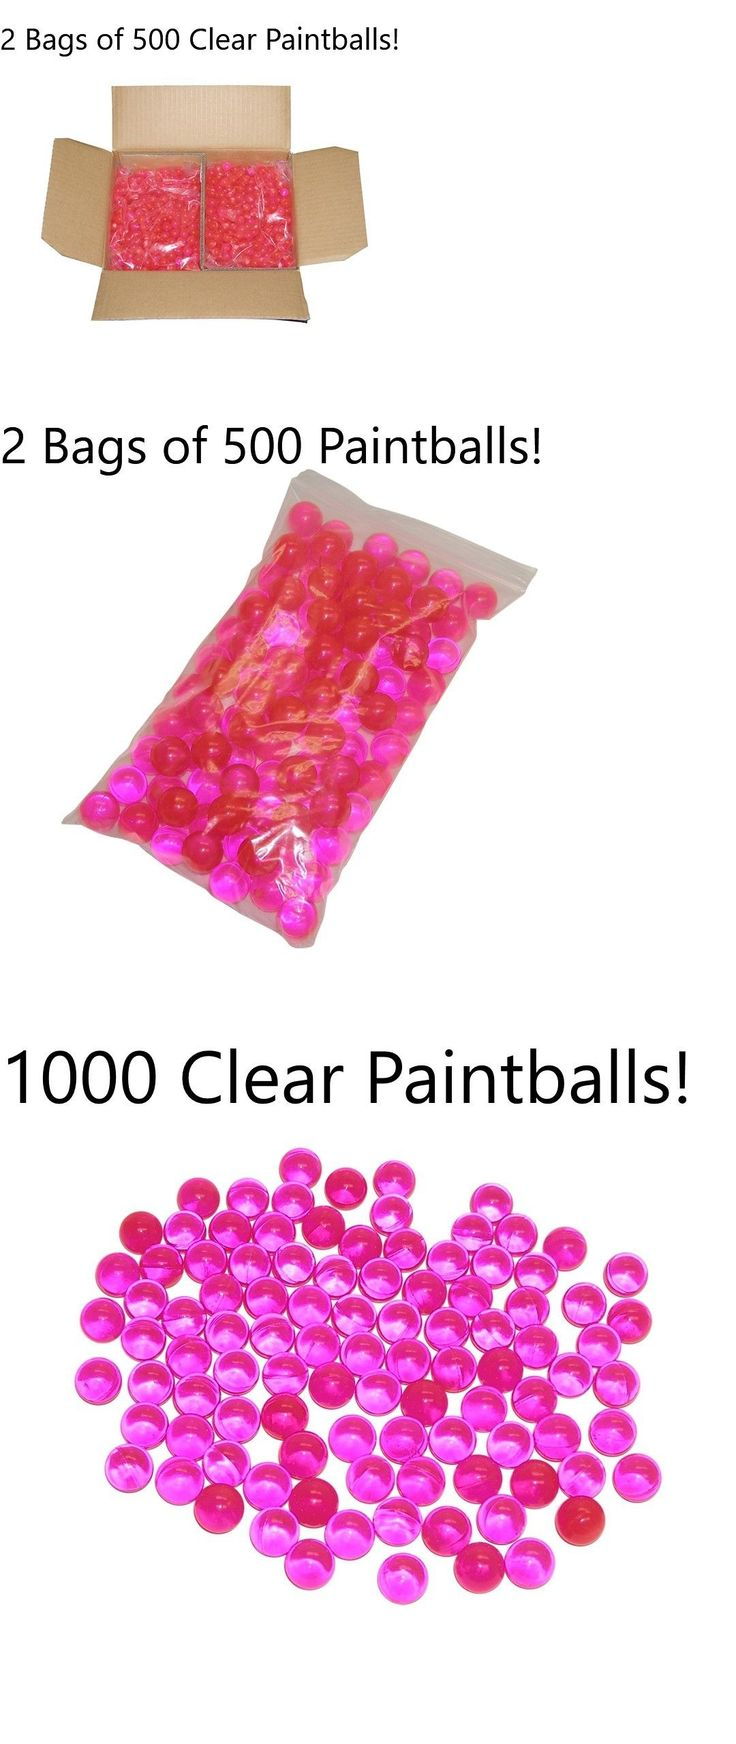 Paintballs 16049: 1000 Clear Police Law Enforcement Training 68 Caliber Premium Paintballs Case -> BUY IT NOW ONLY: $48 on eBay!